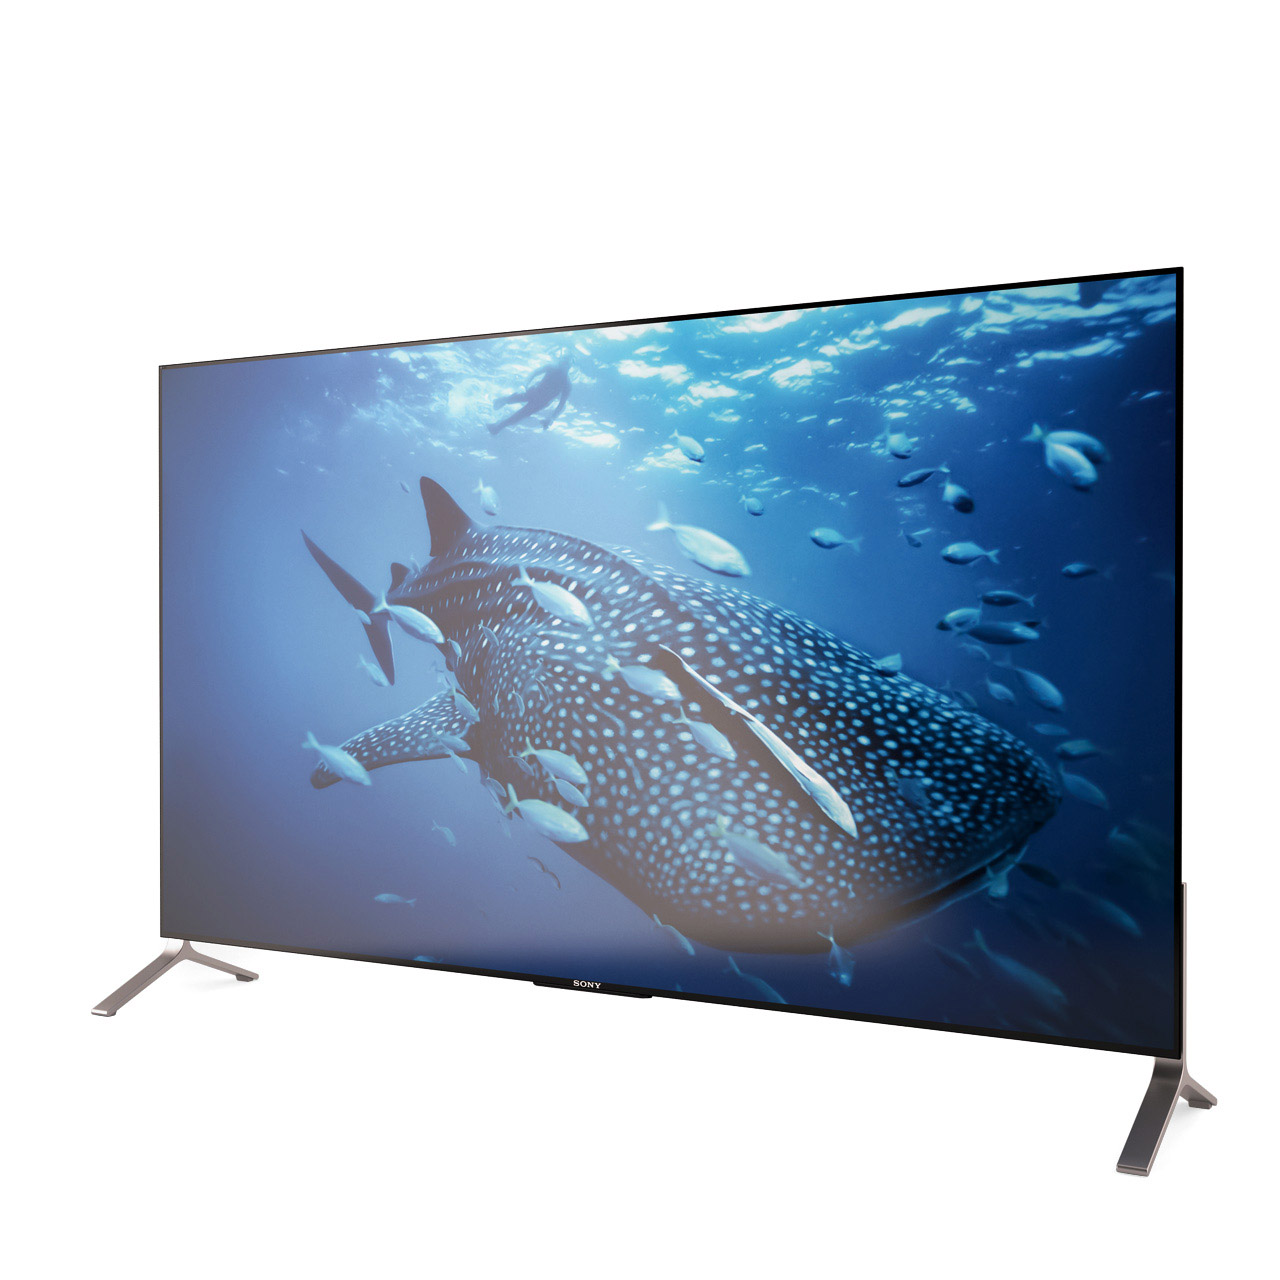 4K Bravia X900C TV by Sony